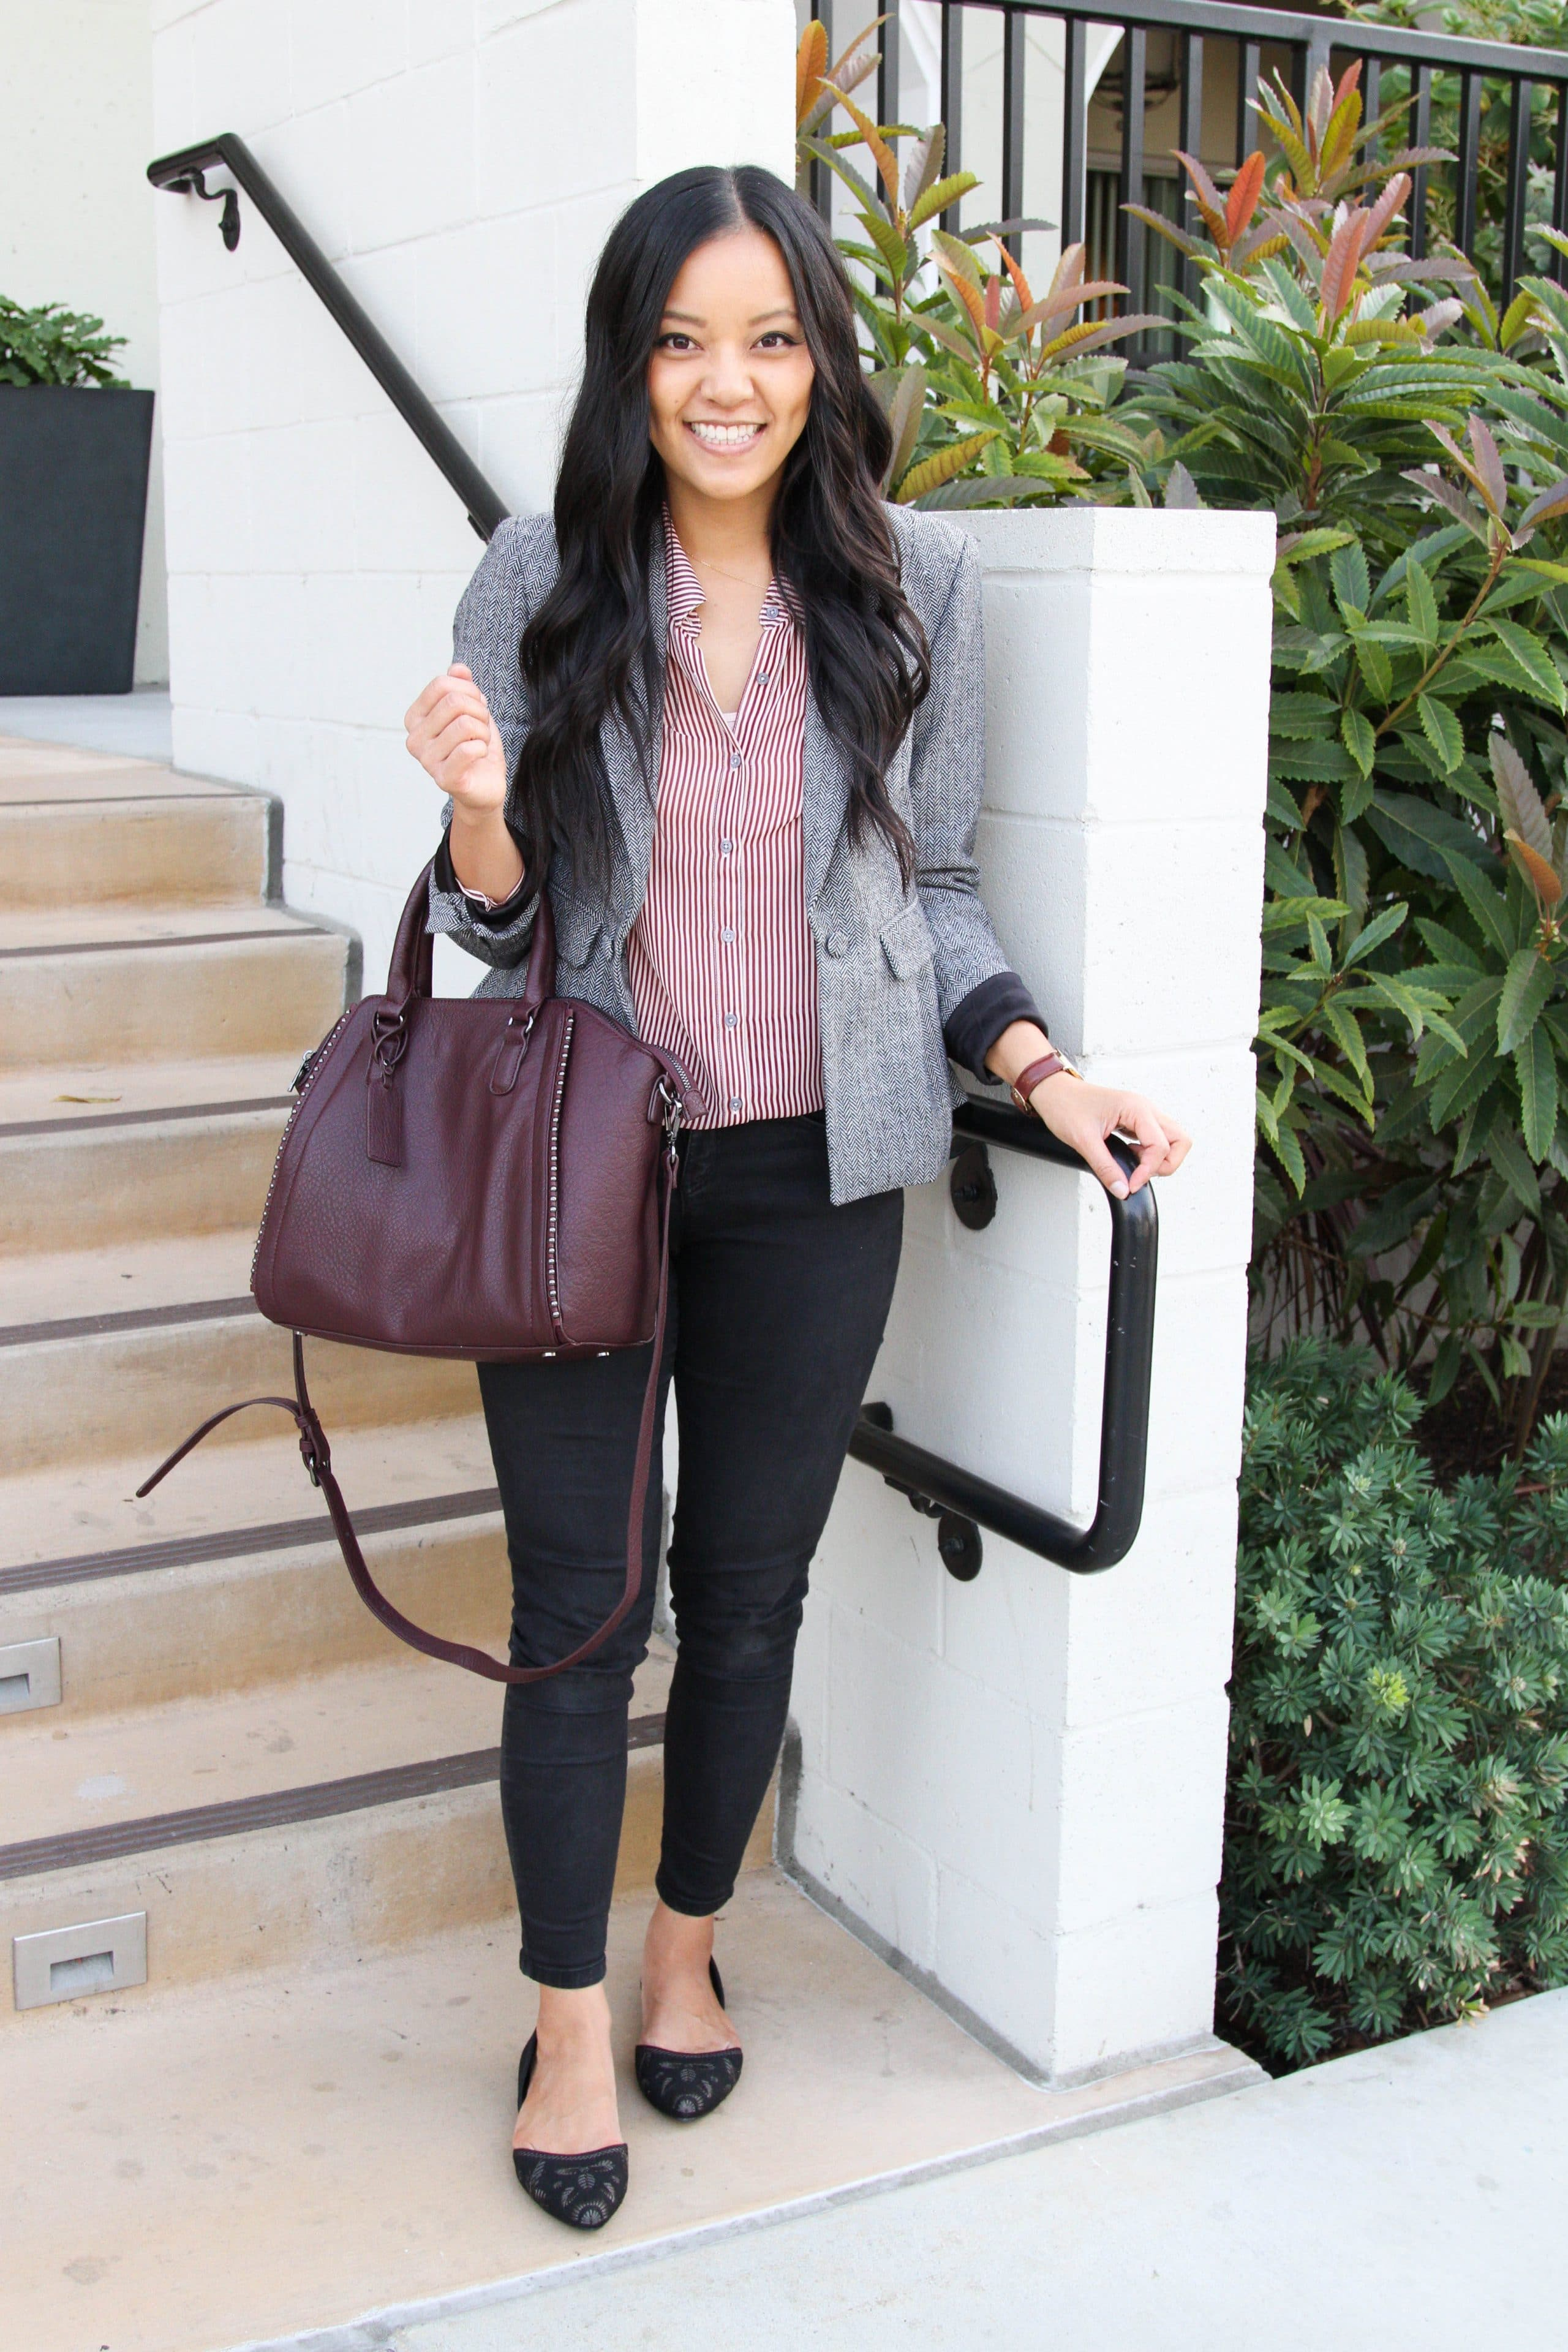 Grey Blazer + Black Skinnies + Black Flats + Wine Bag + Striped Blouse